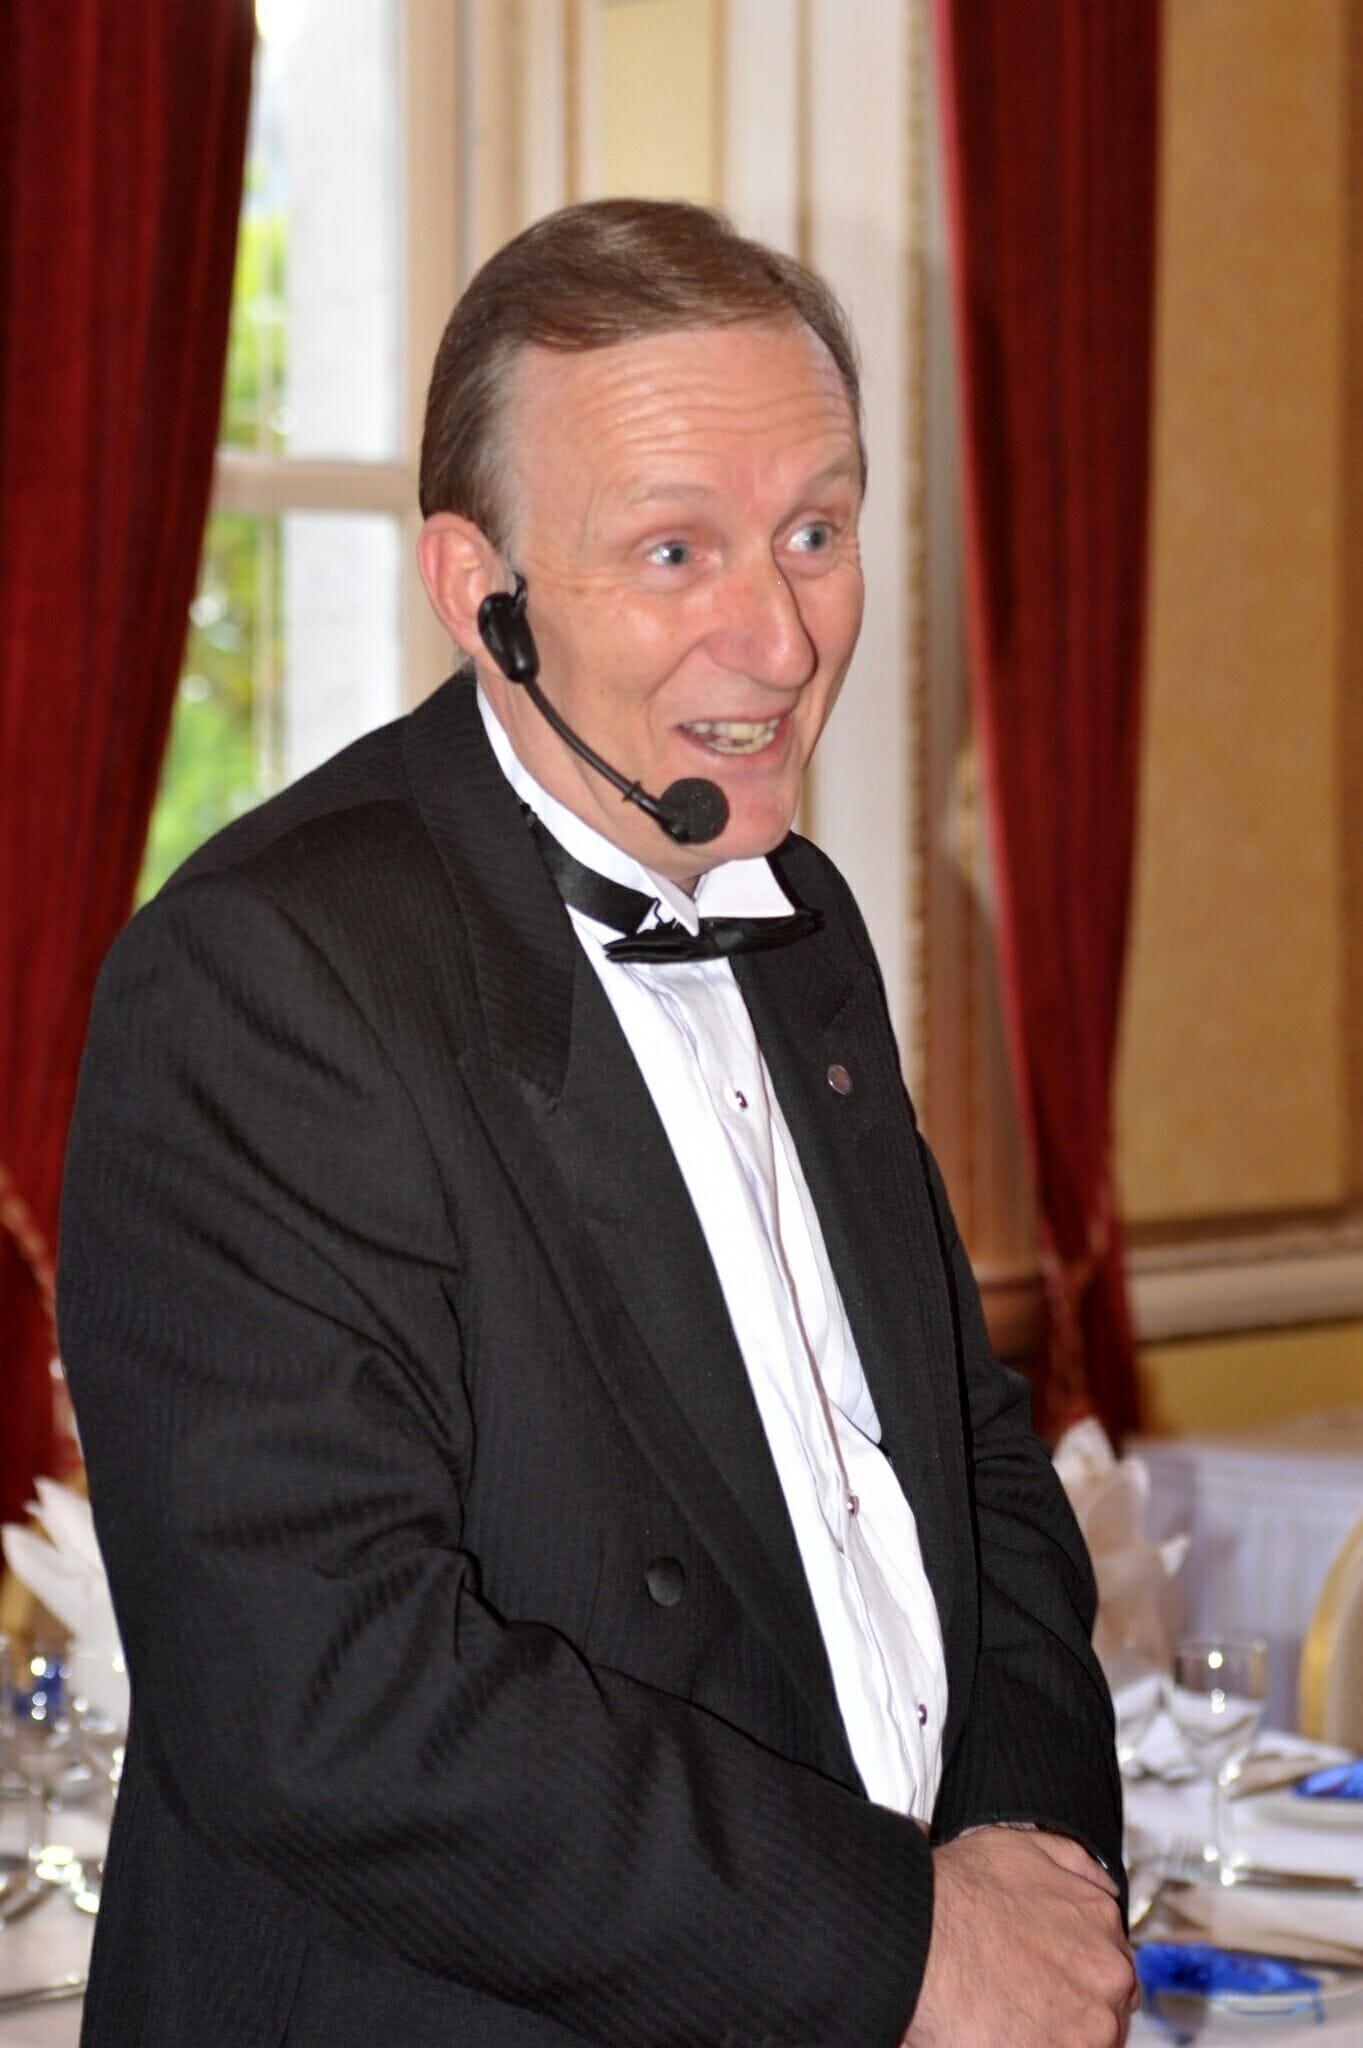 Fundraising Auctioneer Buckinghamshire OZ